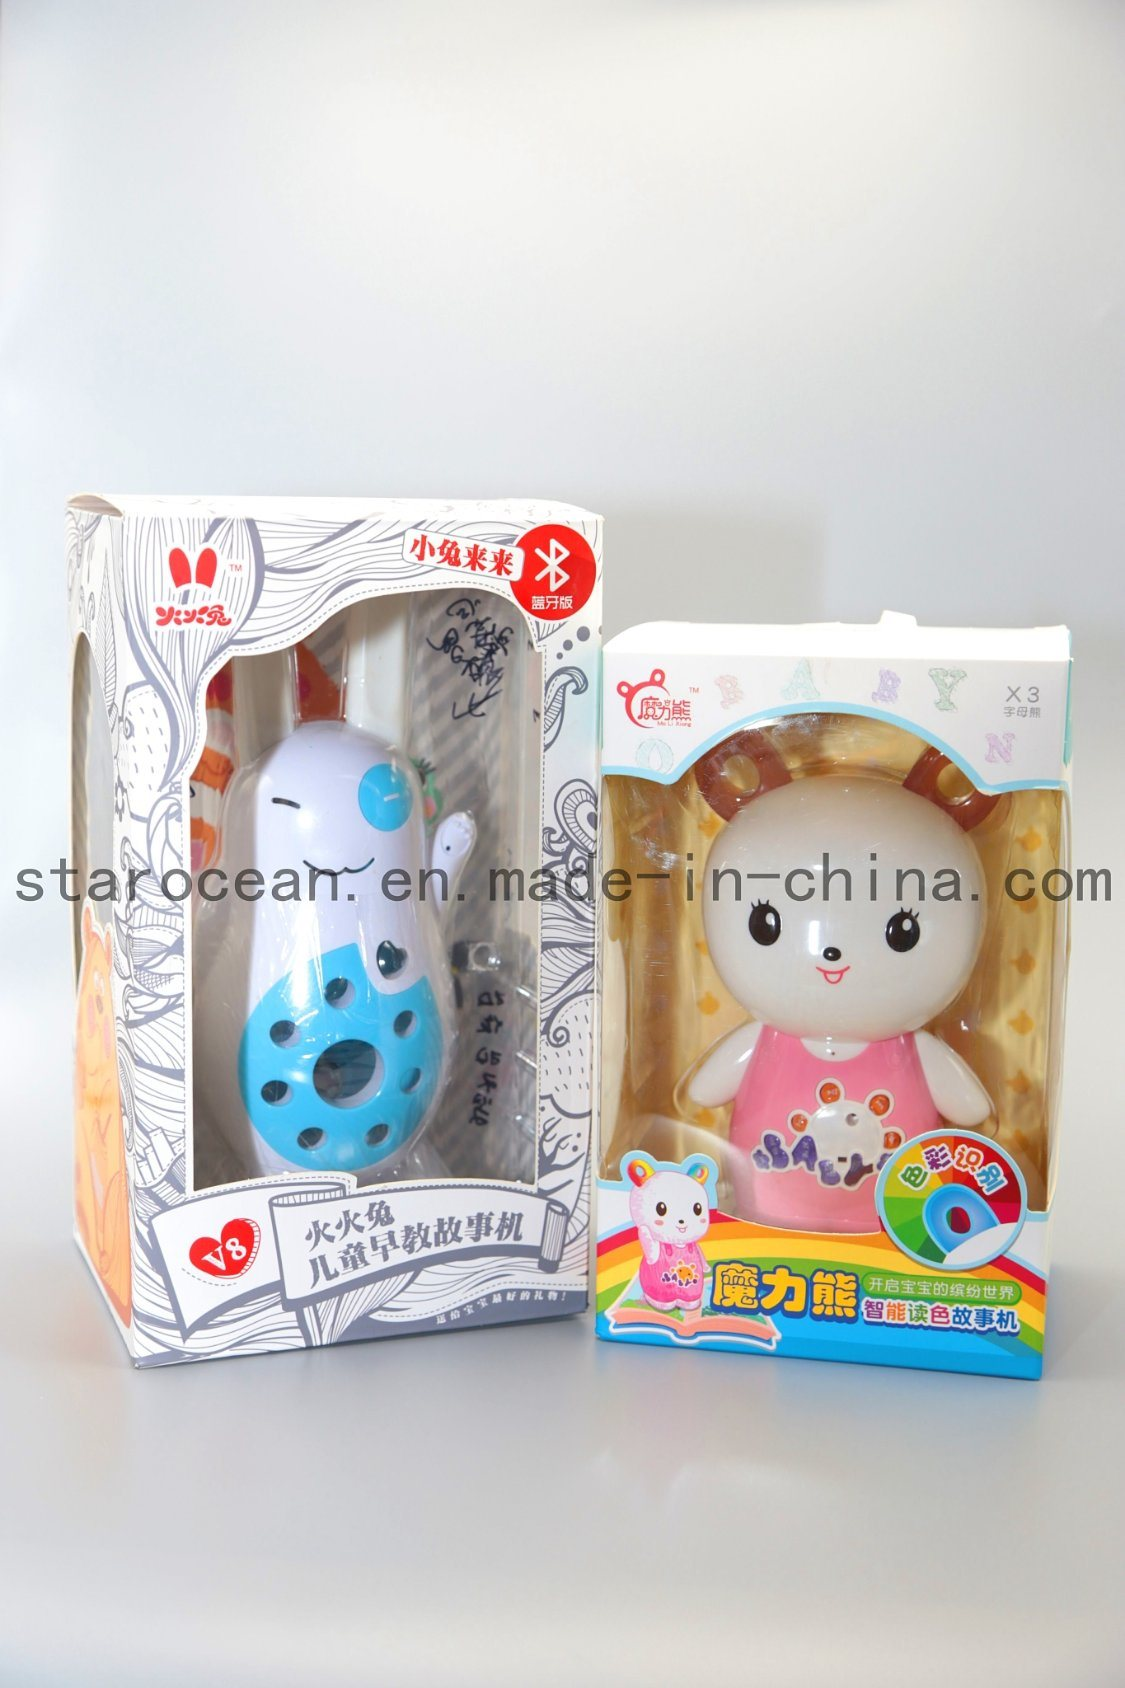 Plastic PVC Packaging Box for Toy Products